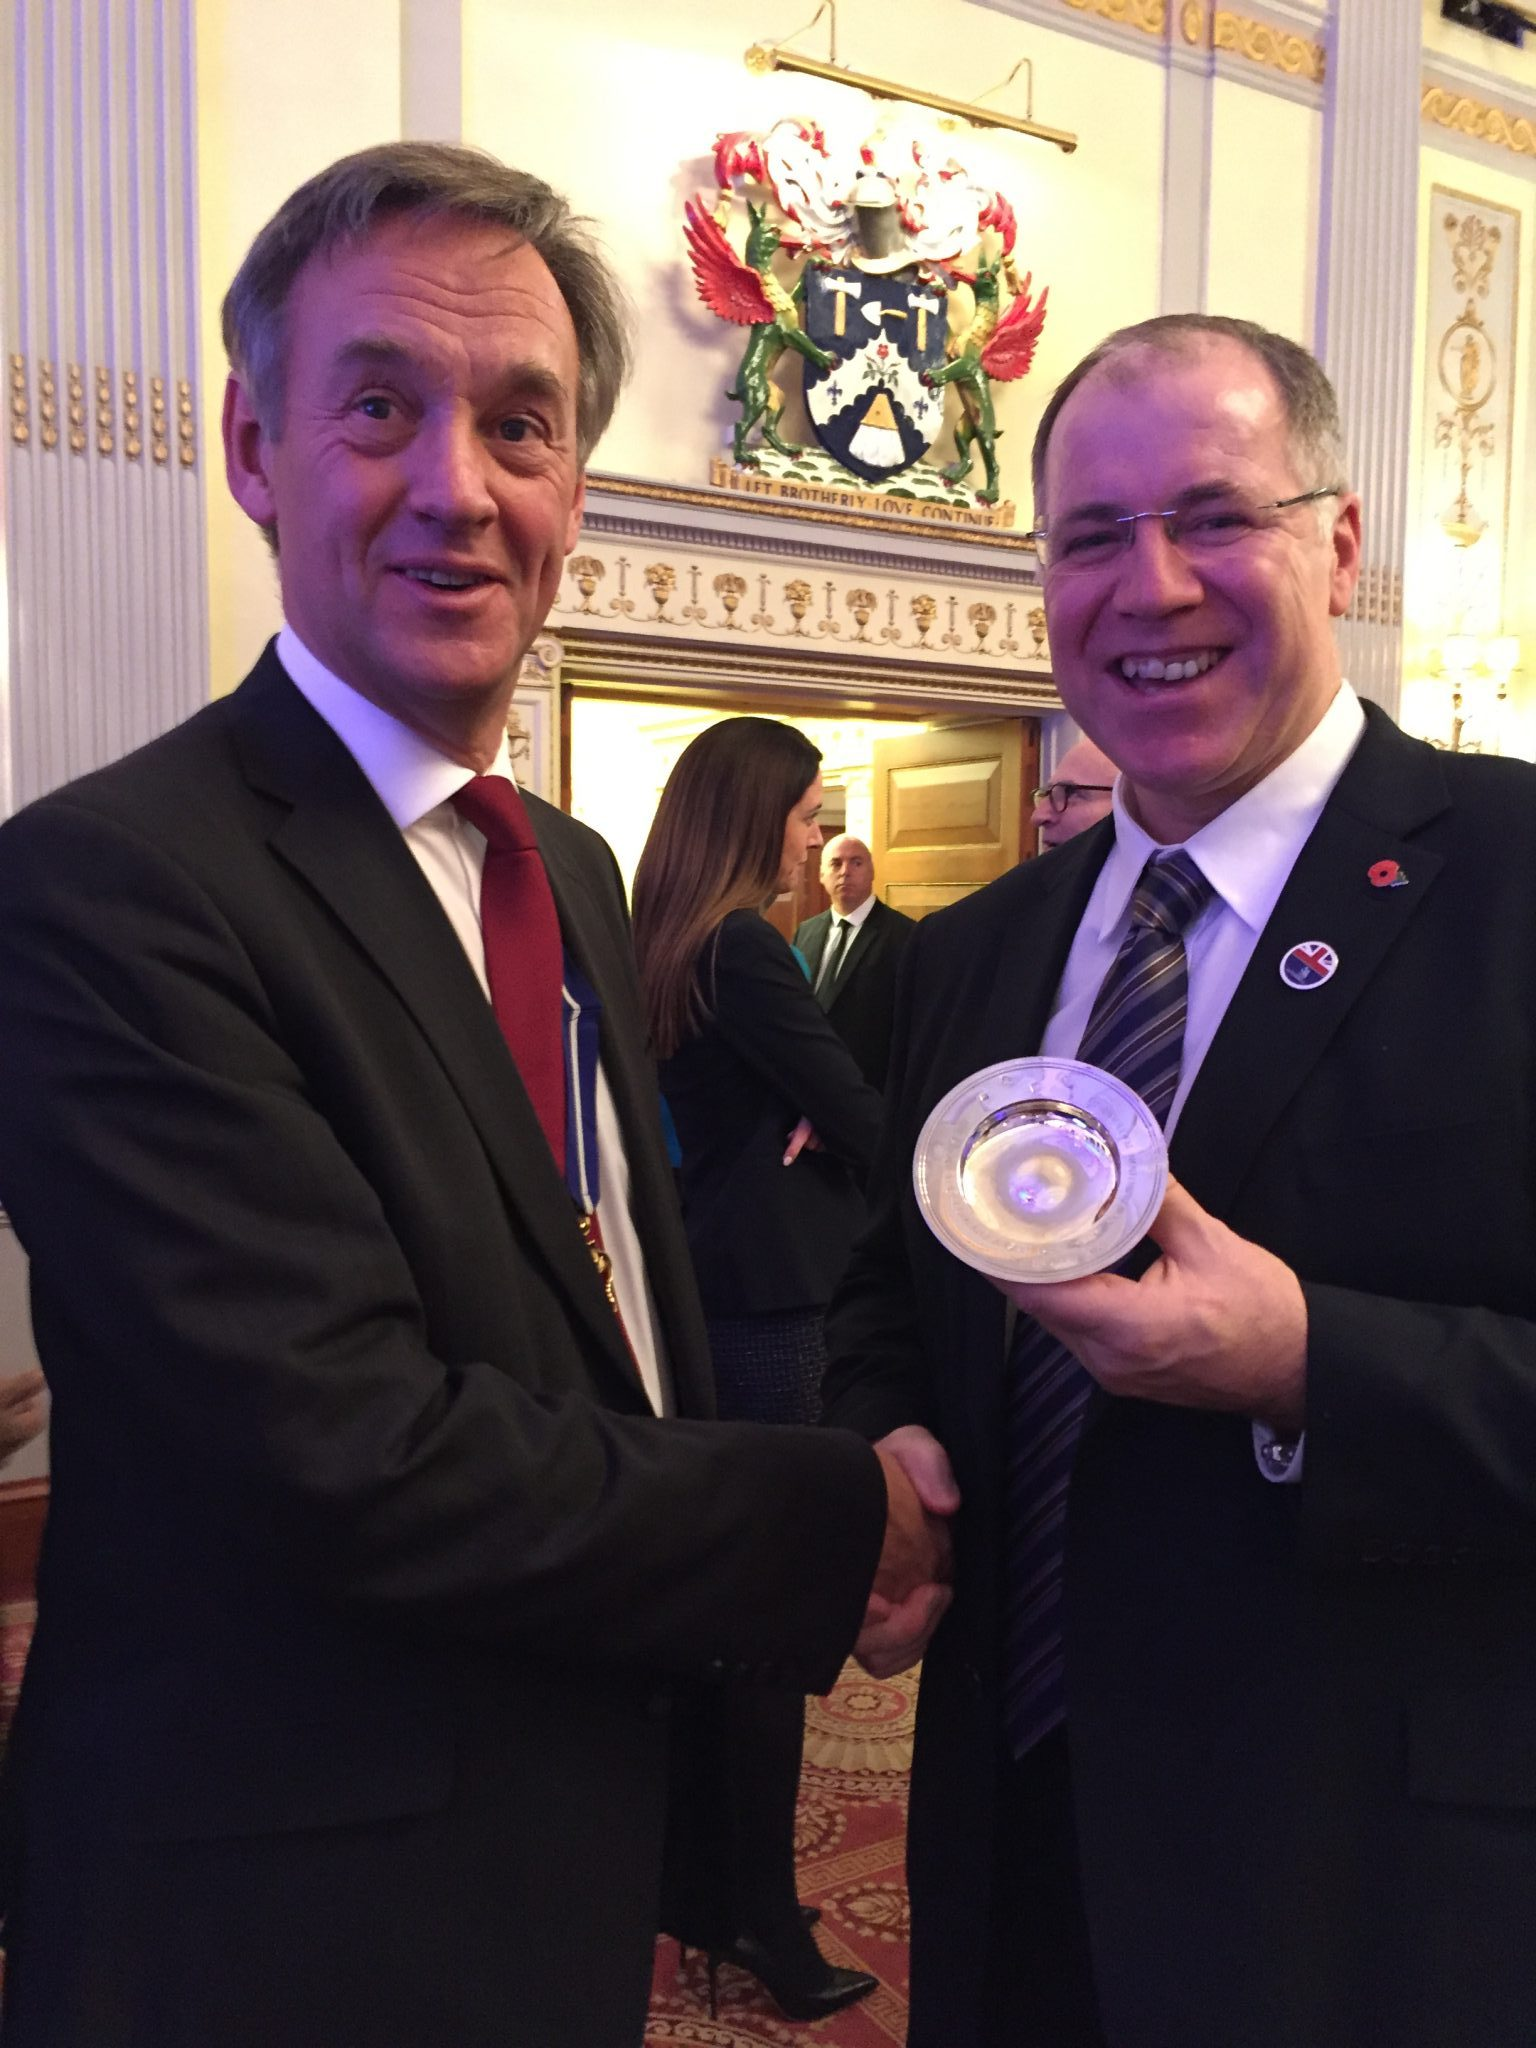 Timothy Cooke OBE, The Worshipful Company of Plaisterers congratulates David Hall